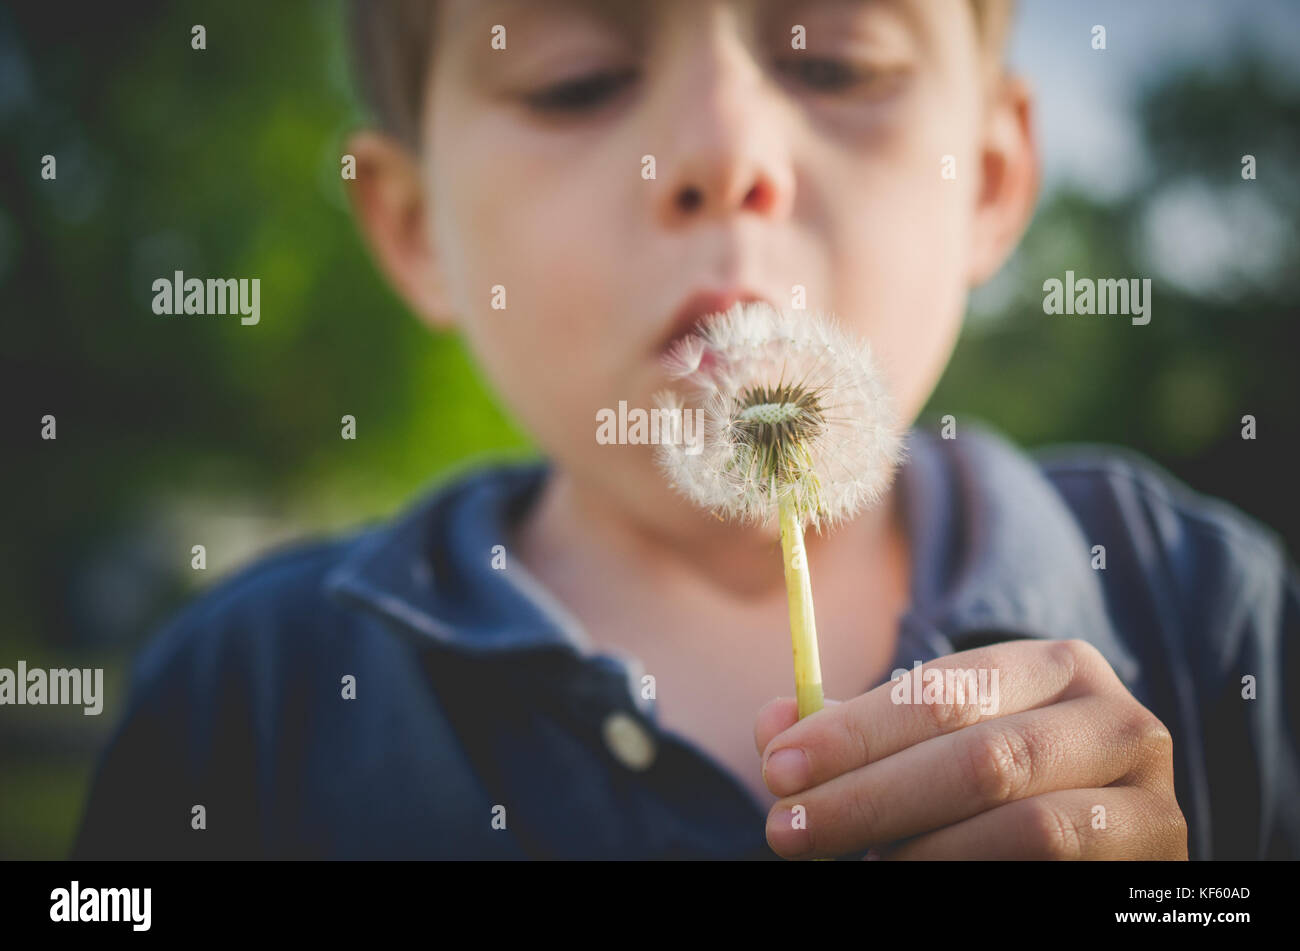 6-7 year old boy blowing dandelion - Stock Image